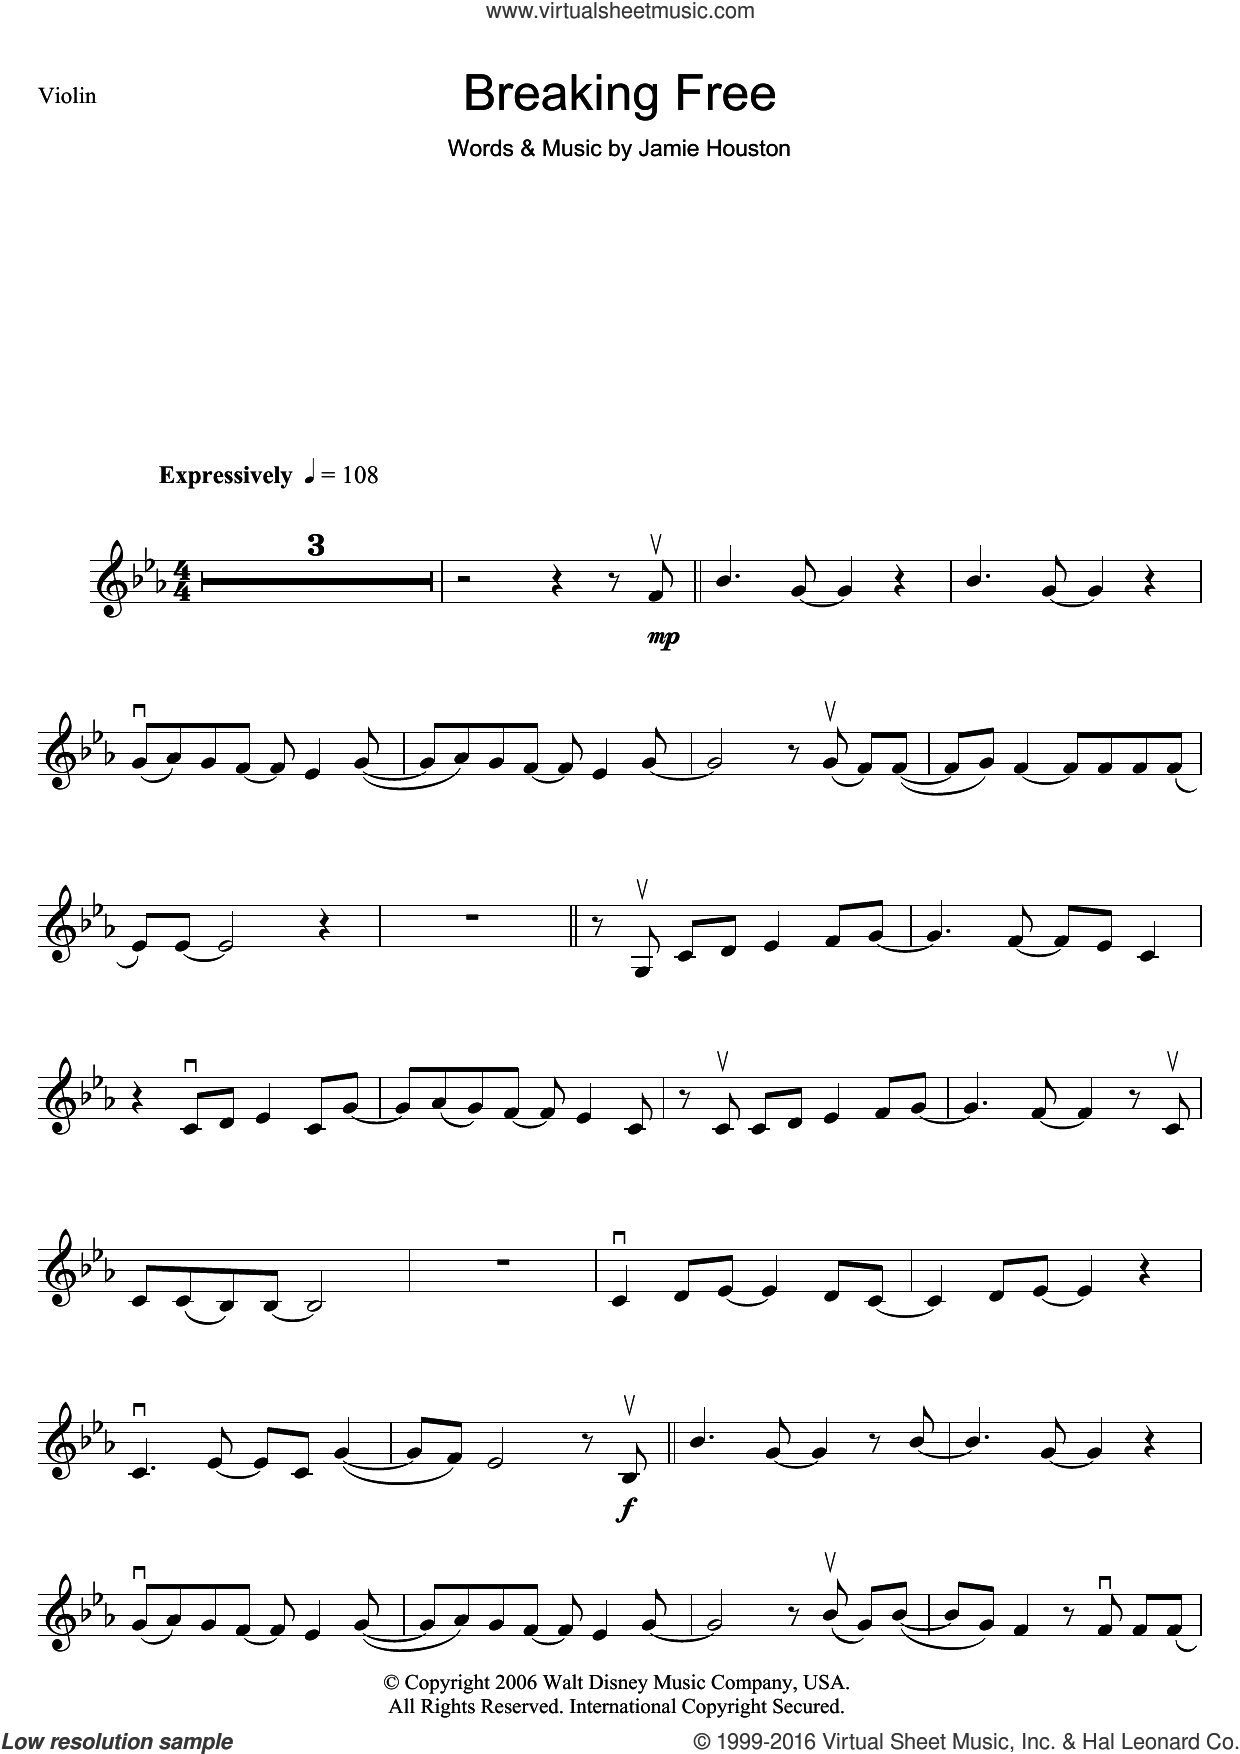 Breaking Free (from High School Musical) sheet music for violin solo by Jamie Houston, Vanessa Hudgens and Zac Efron, intermediate skill level